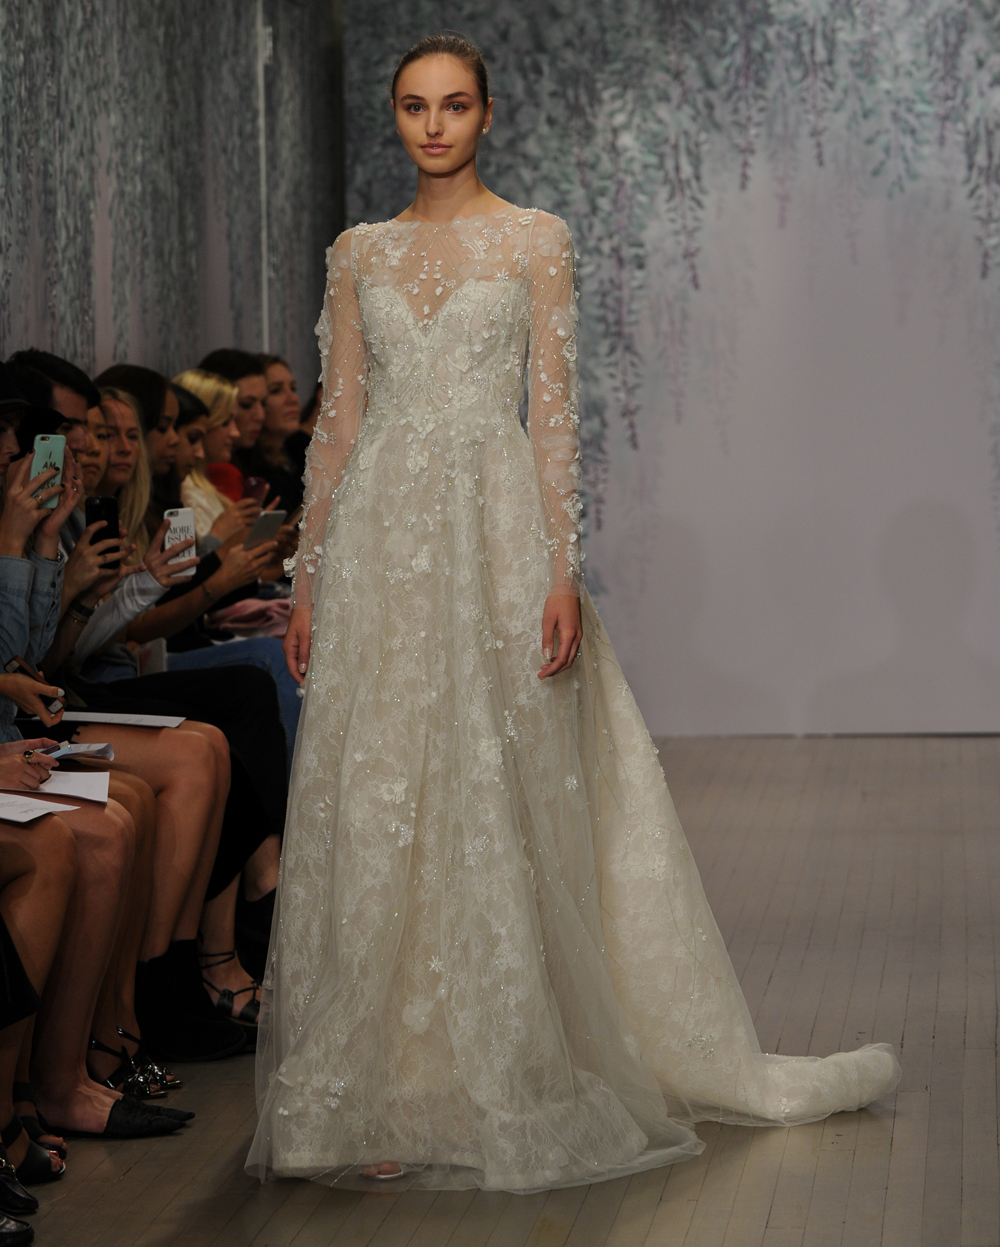 Monique Lhuillier S Fall 2016 Wedding Dress Collection Is